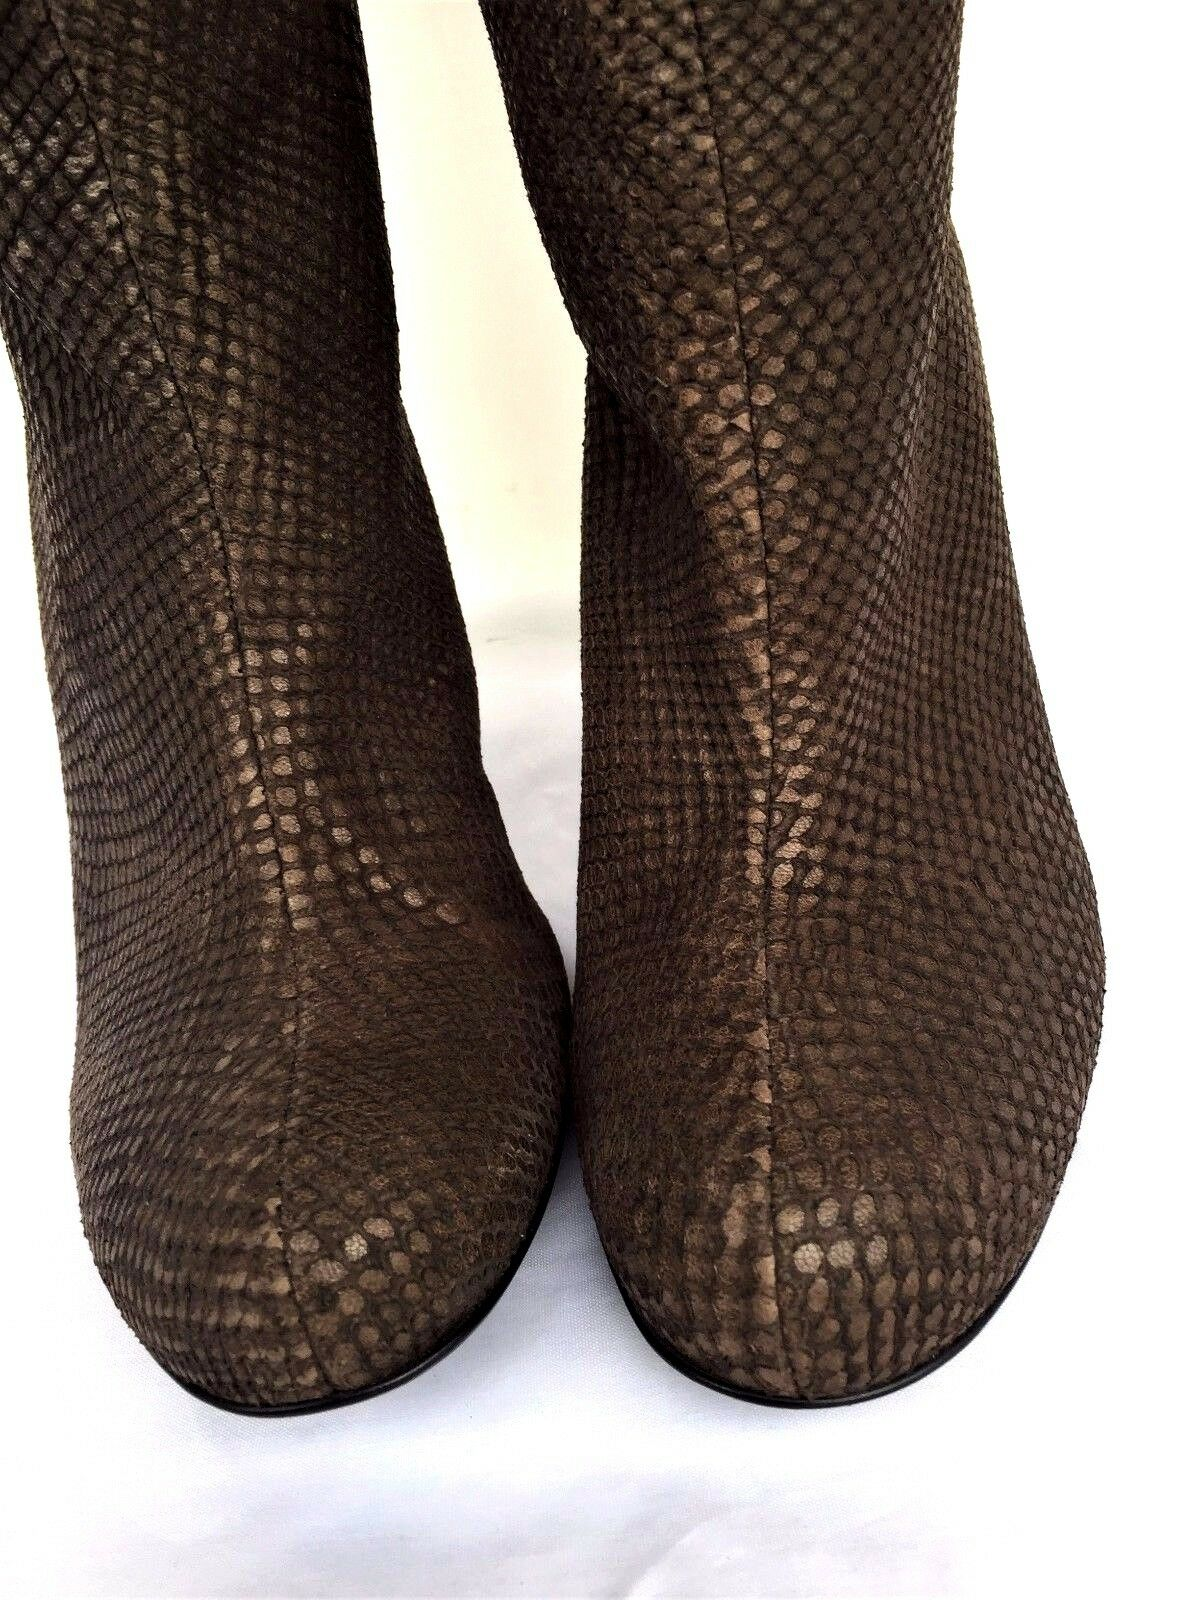 PROF Snake Skin Leather Heel Over The Knee Boots Made In Portugal Sz 39/ US 9M